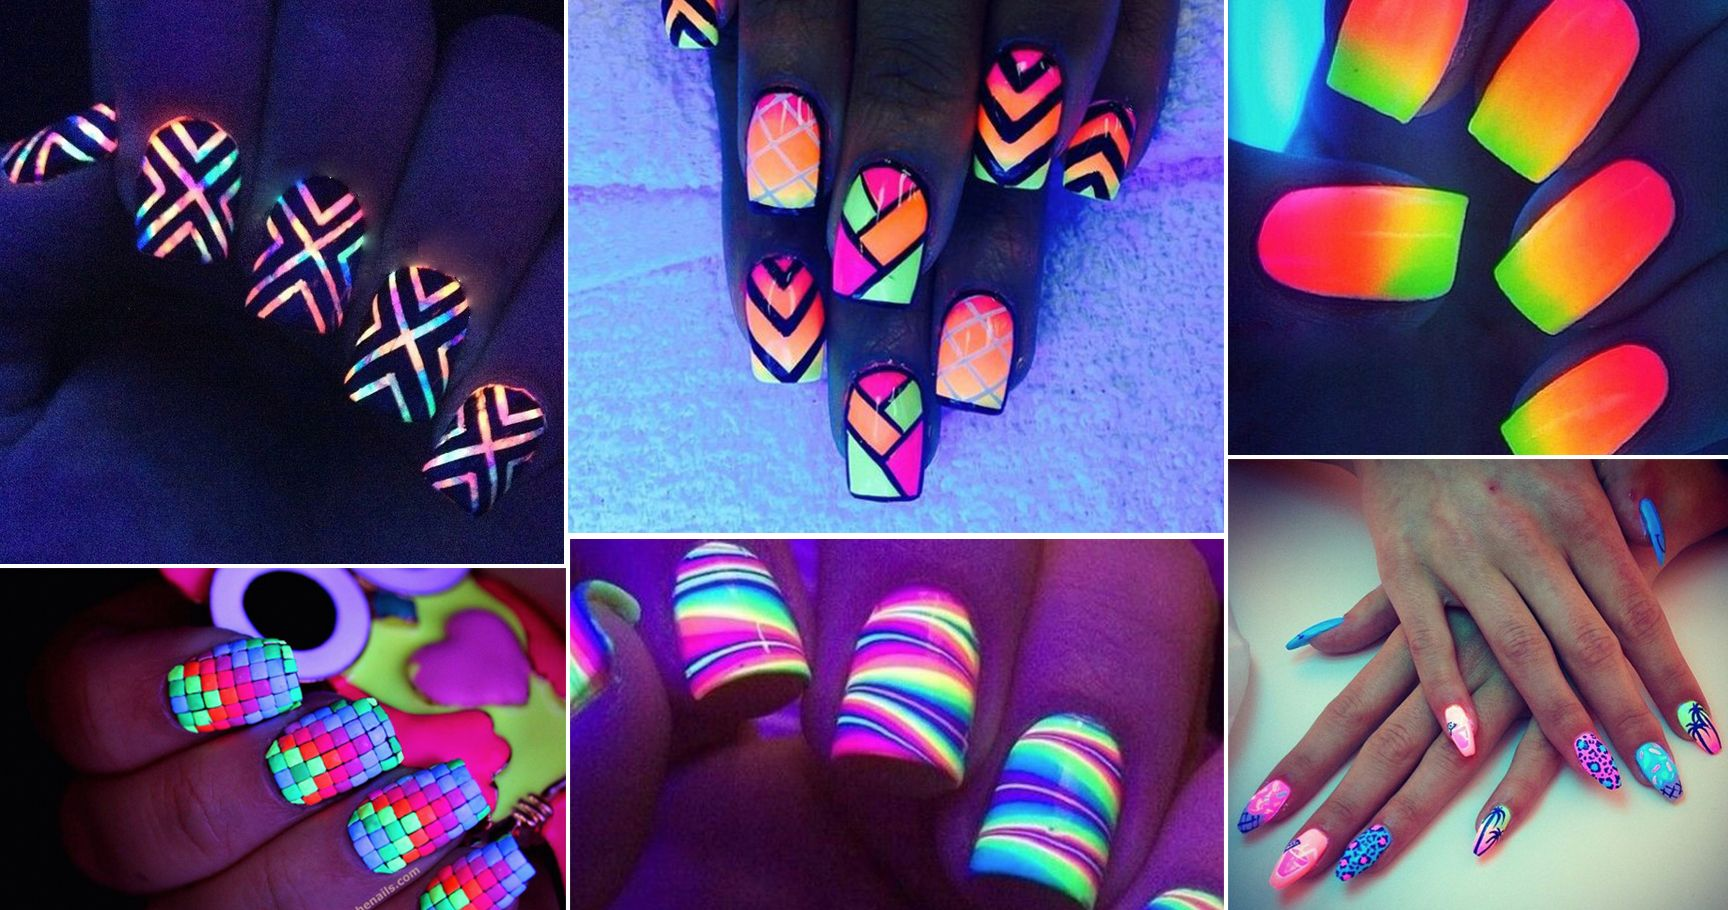 10 Sets Of Glow-In-The-Dark Nails That Will Light Up Your World